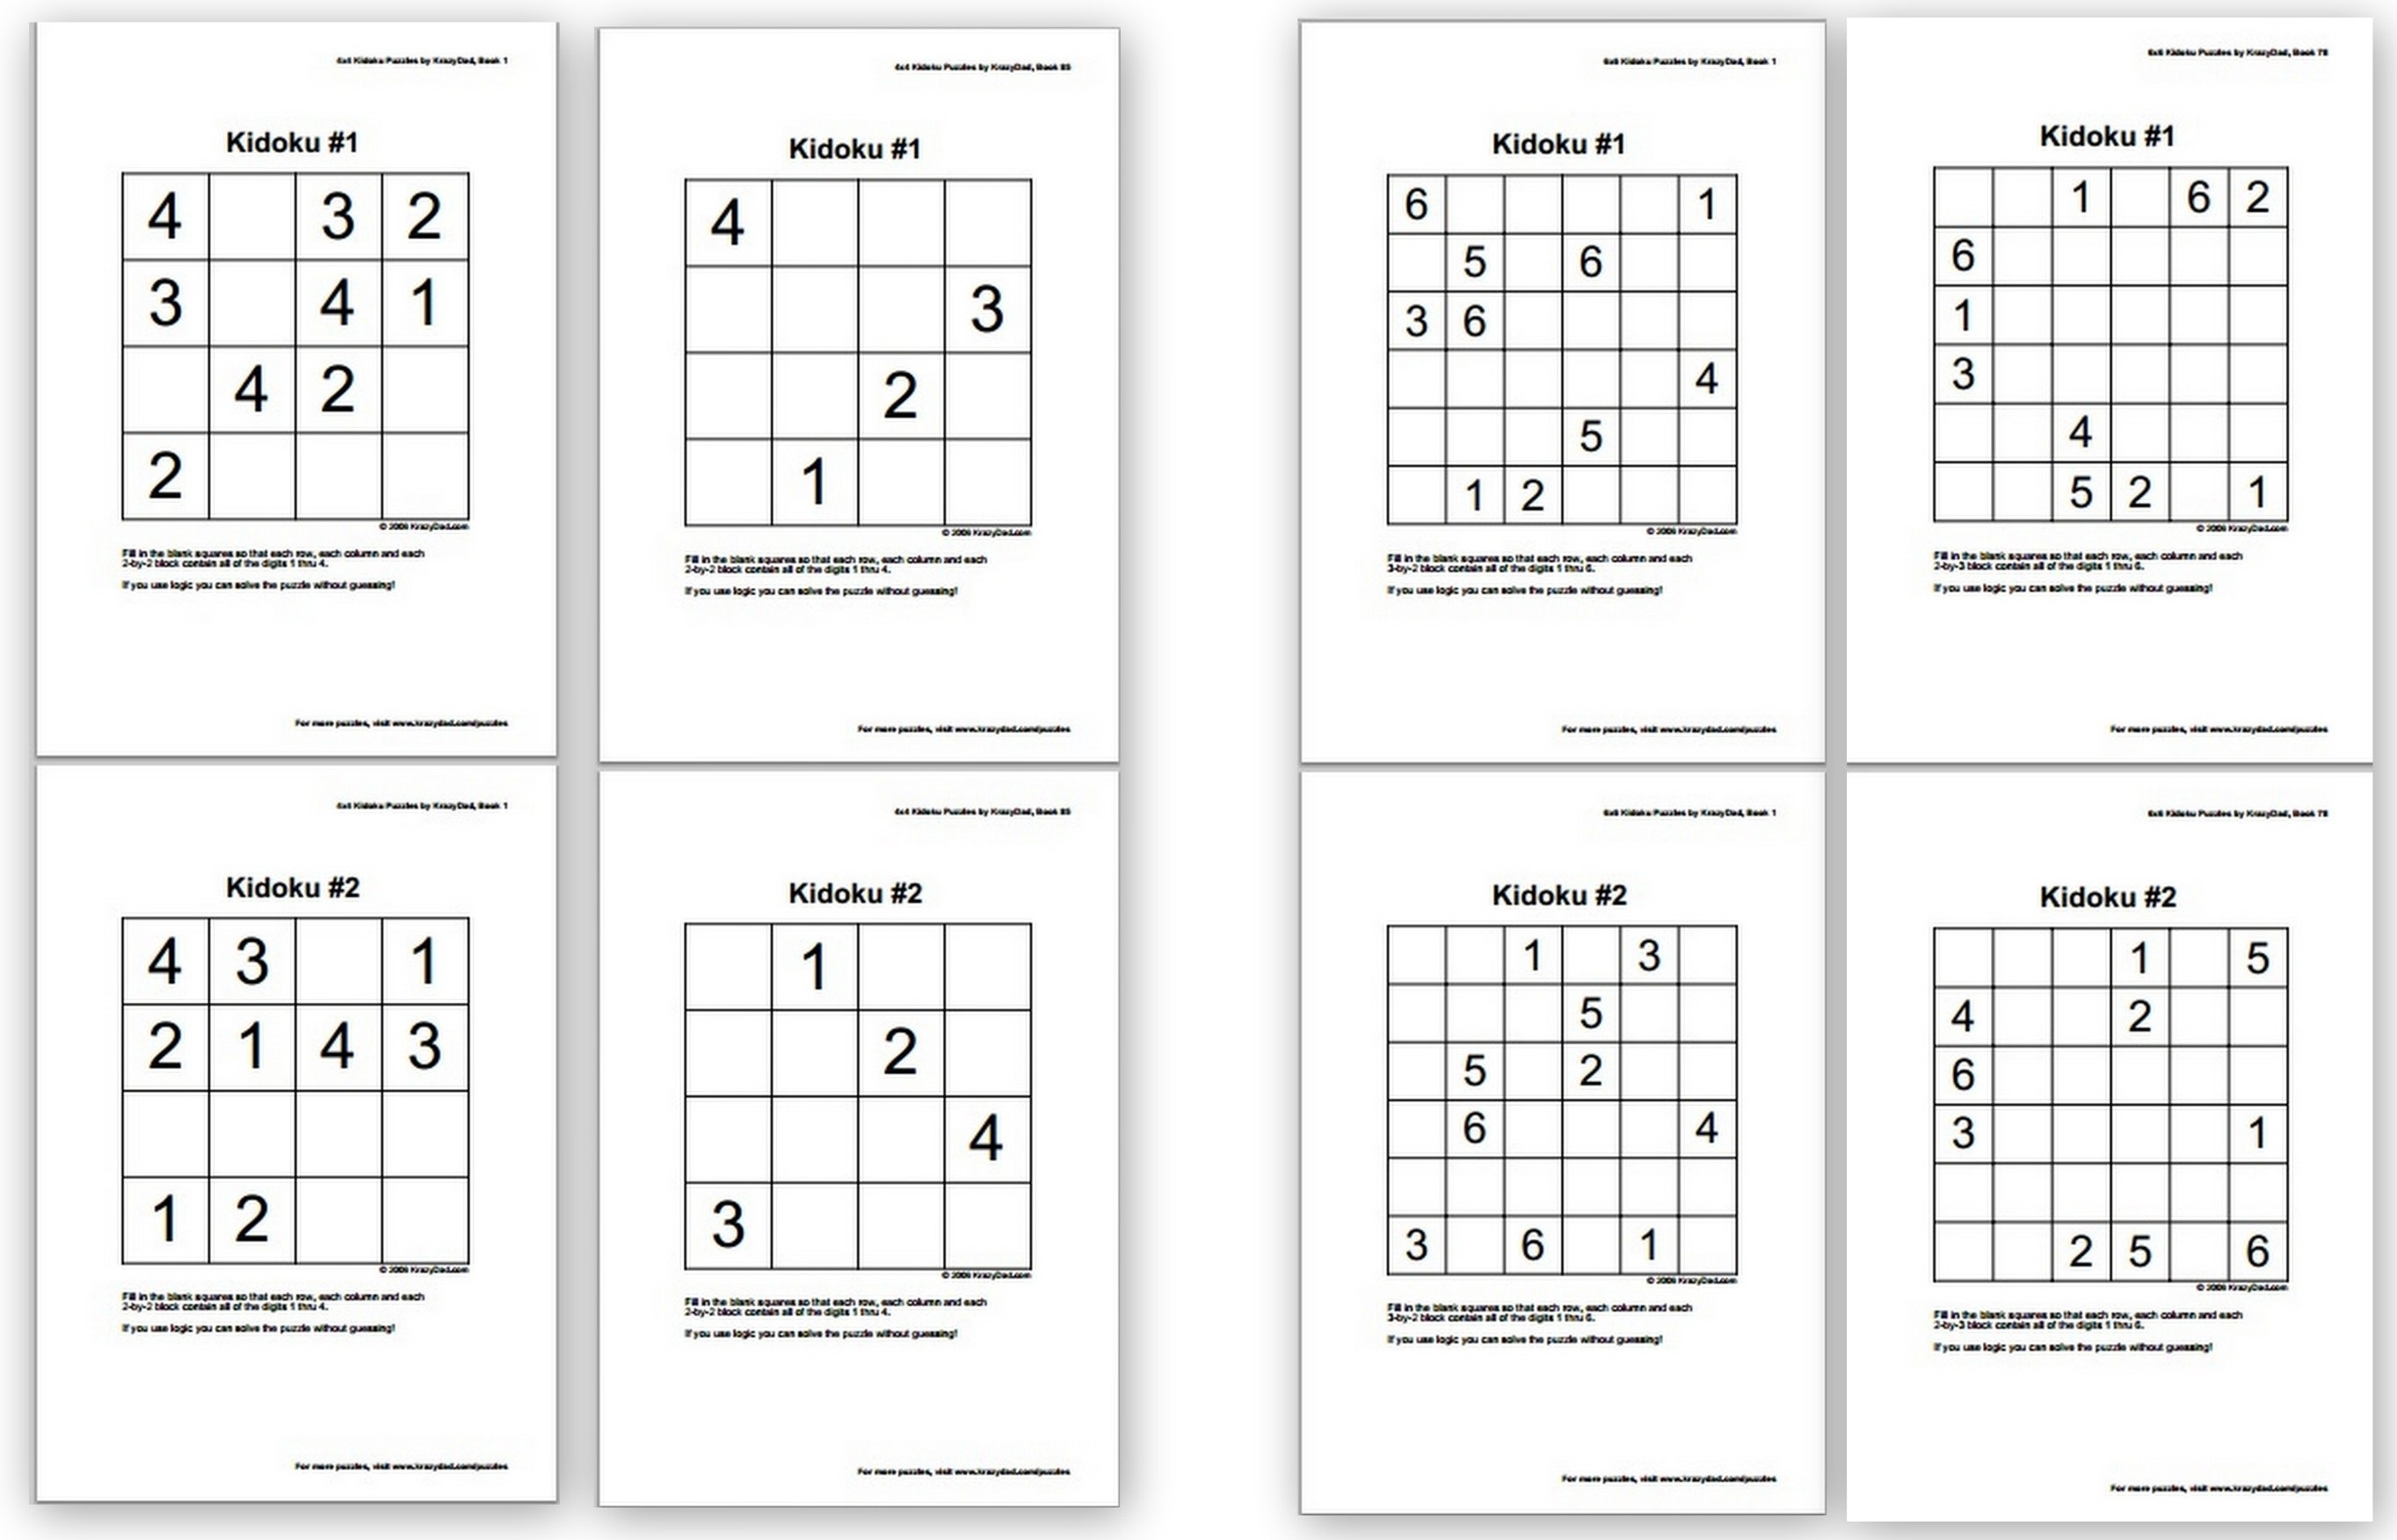 photo relating to Kids Sudoku Printable named Free of charge Sudoku Puzzles for Little ones - Homeschool DenHomeschool Den